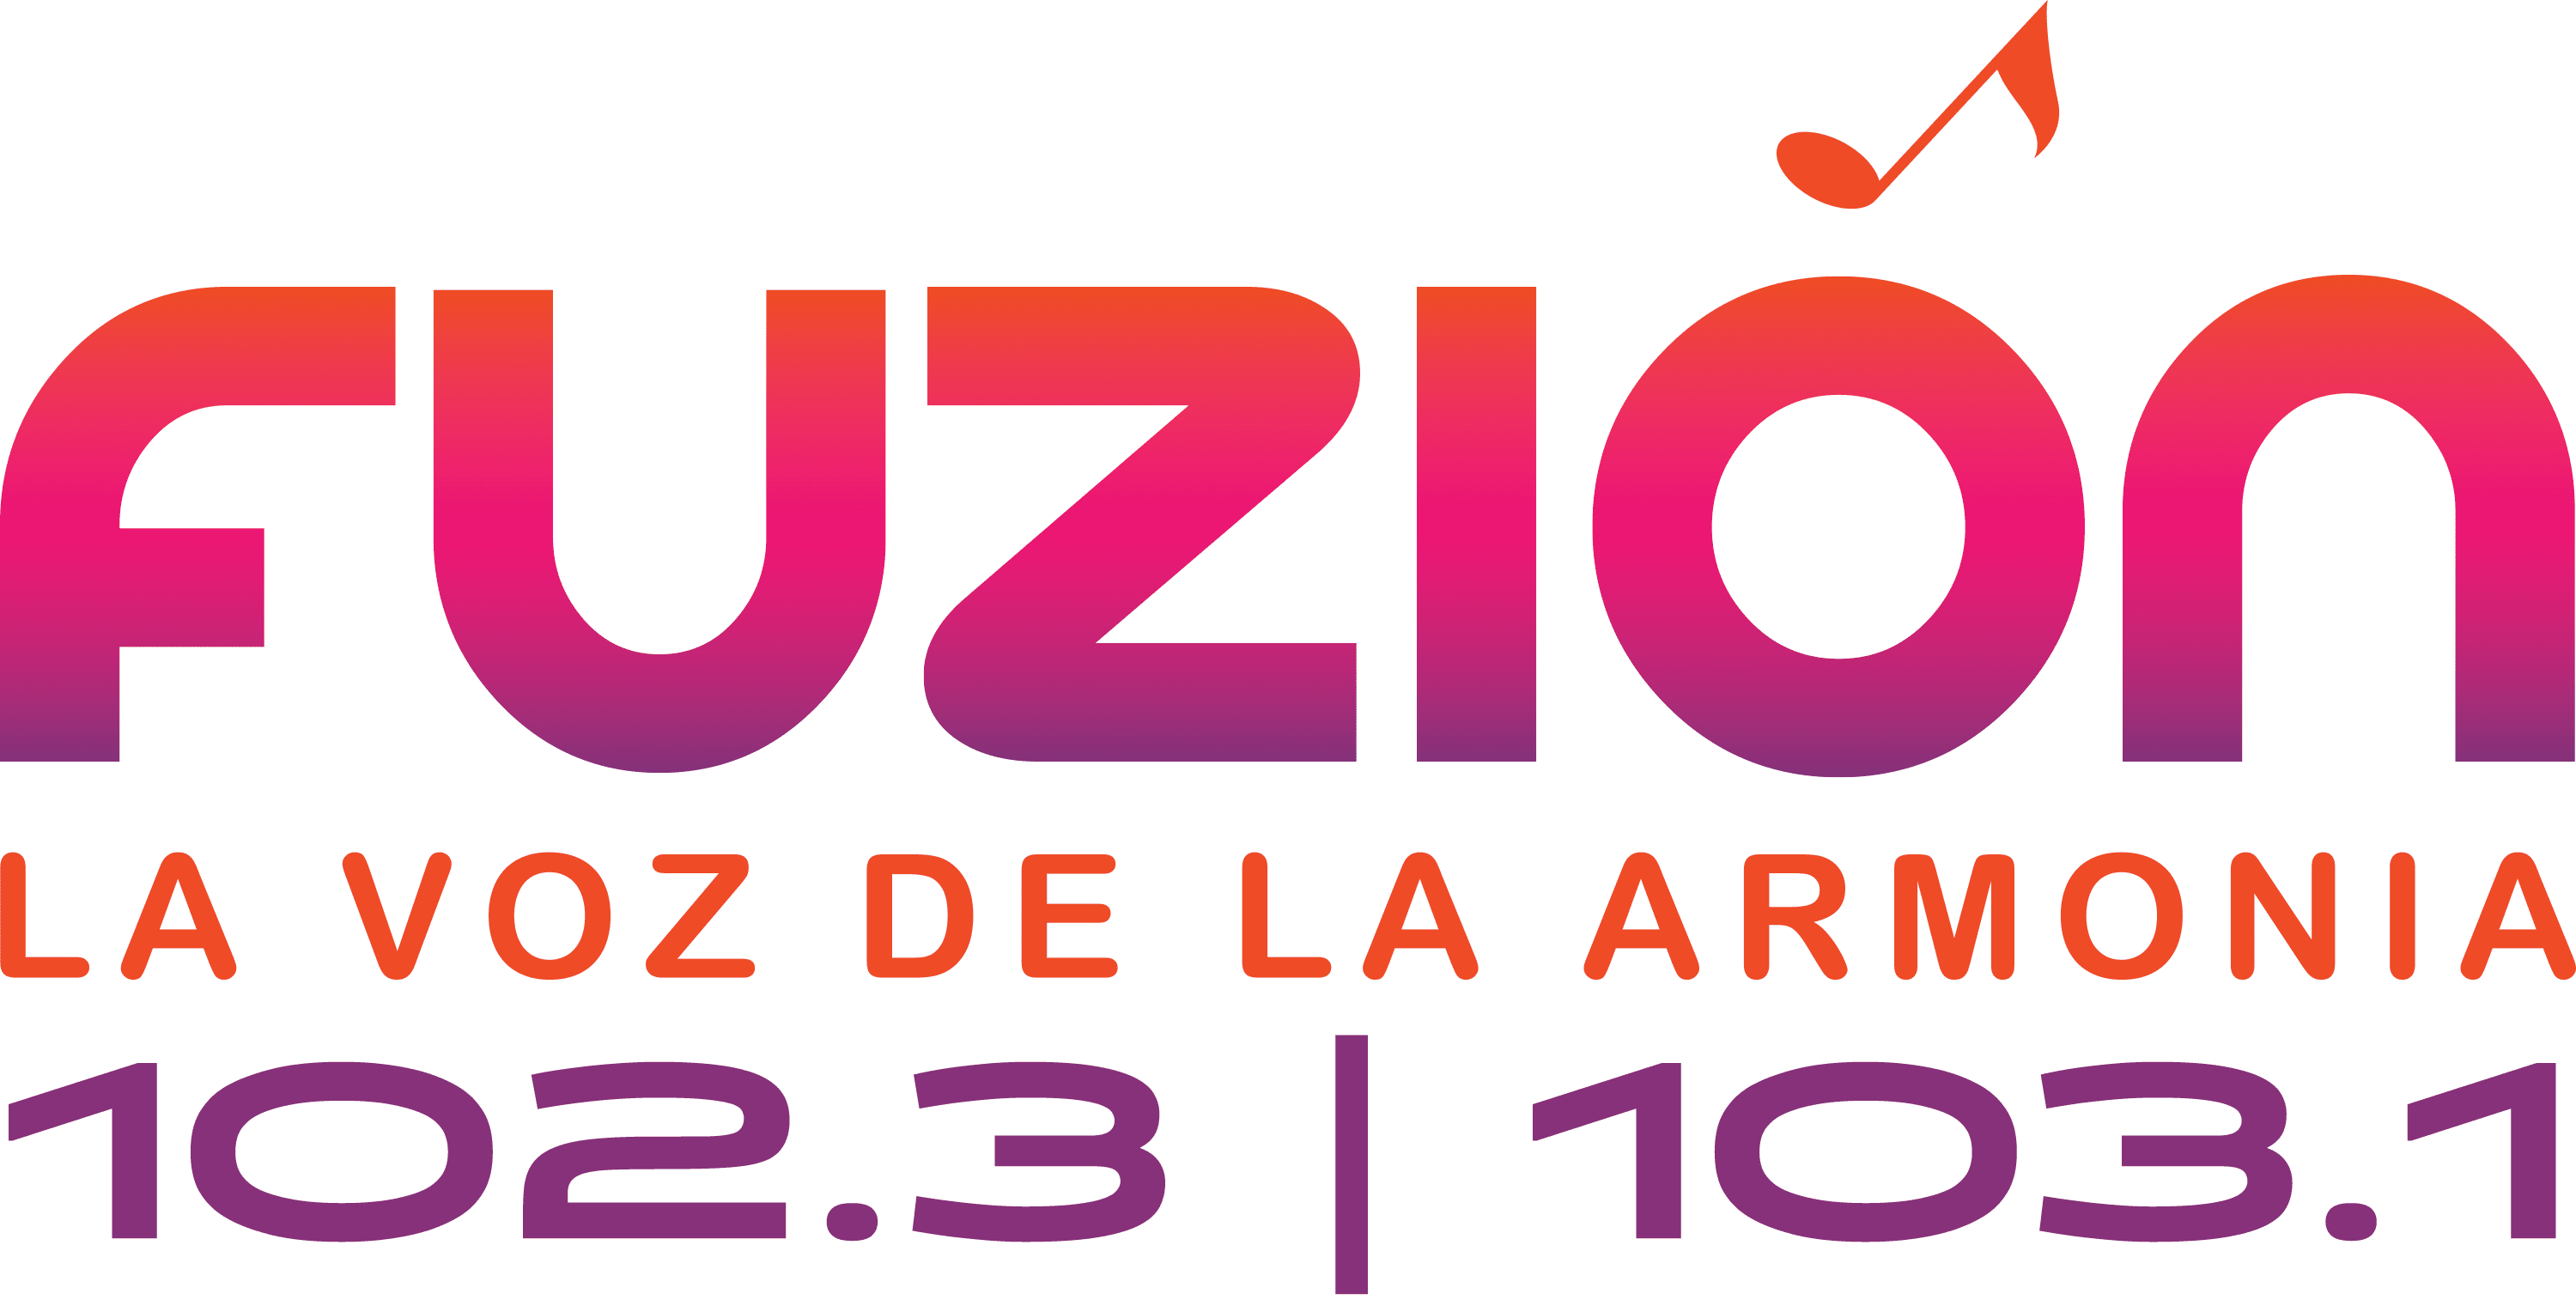 Fuzion Spanish Christian Radio Station